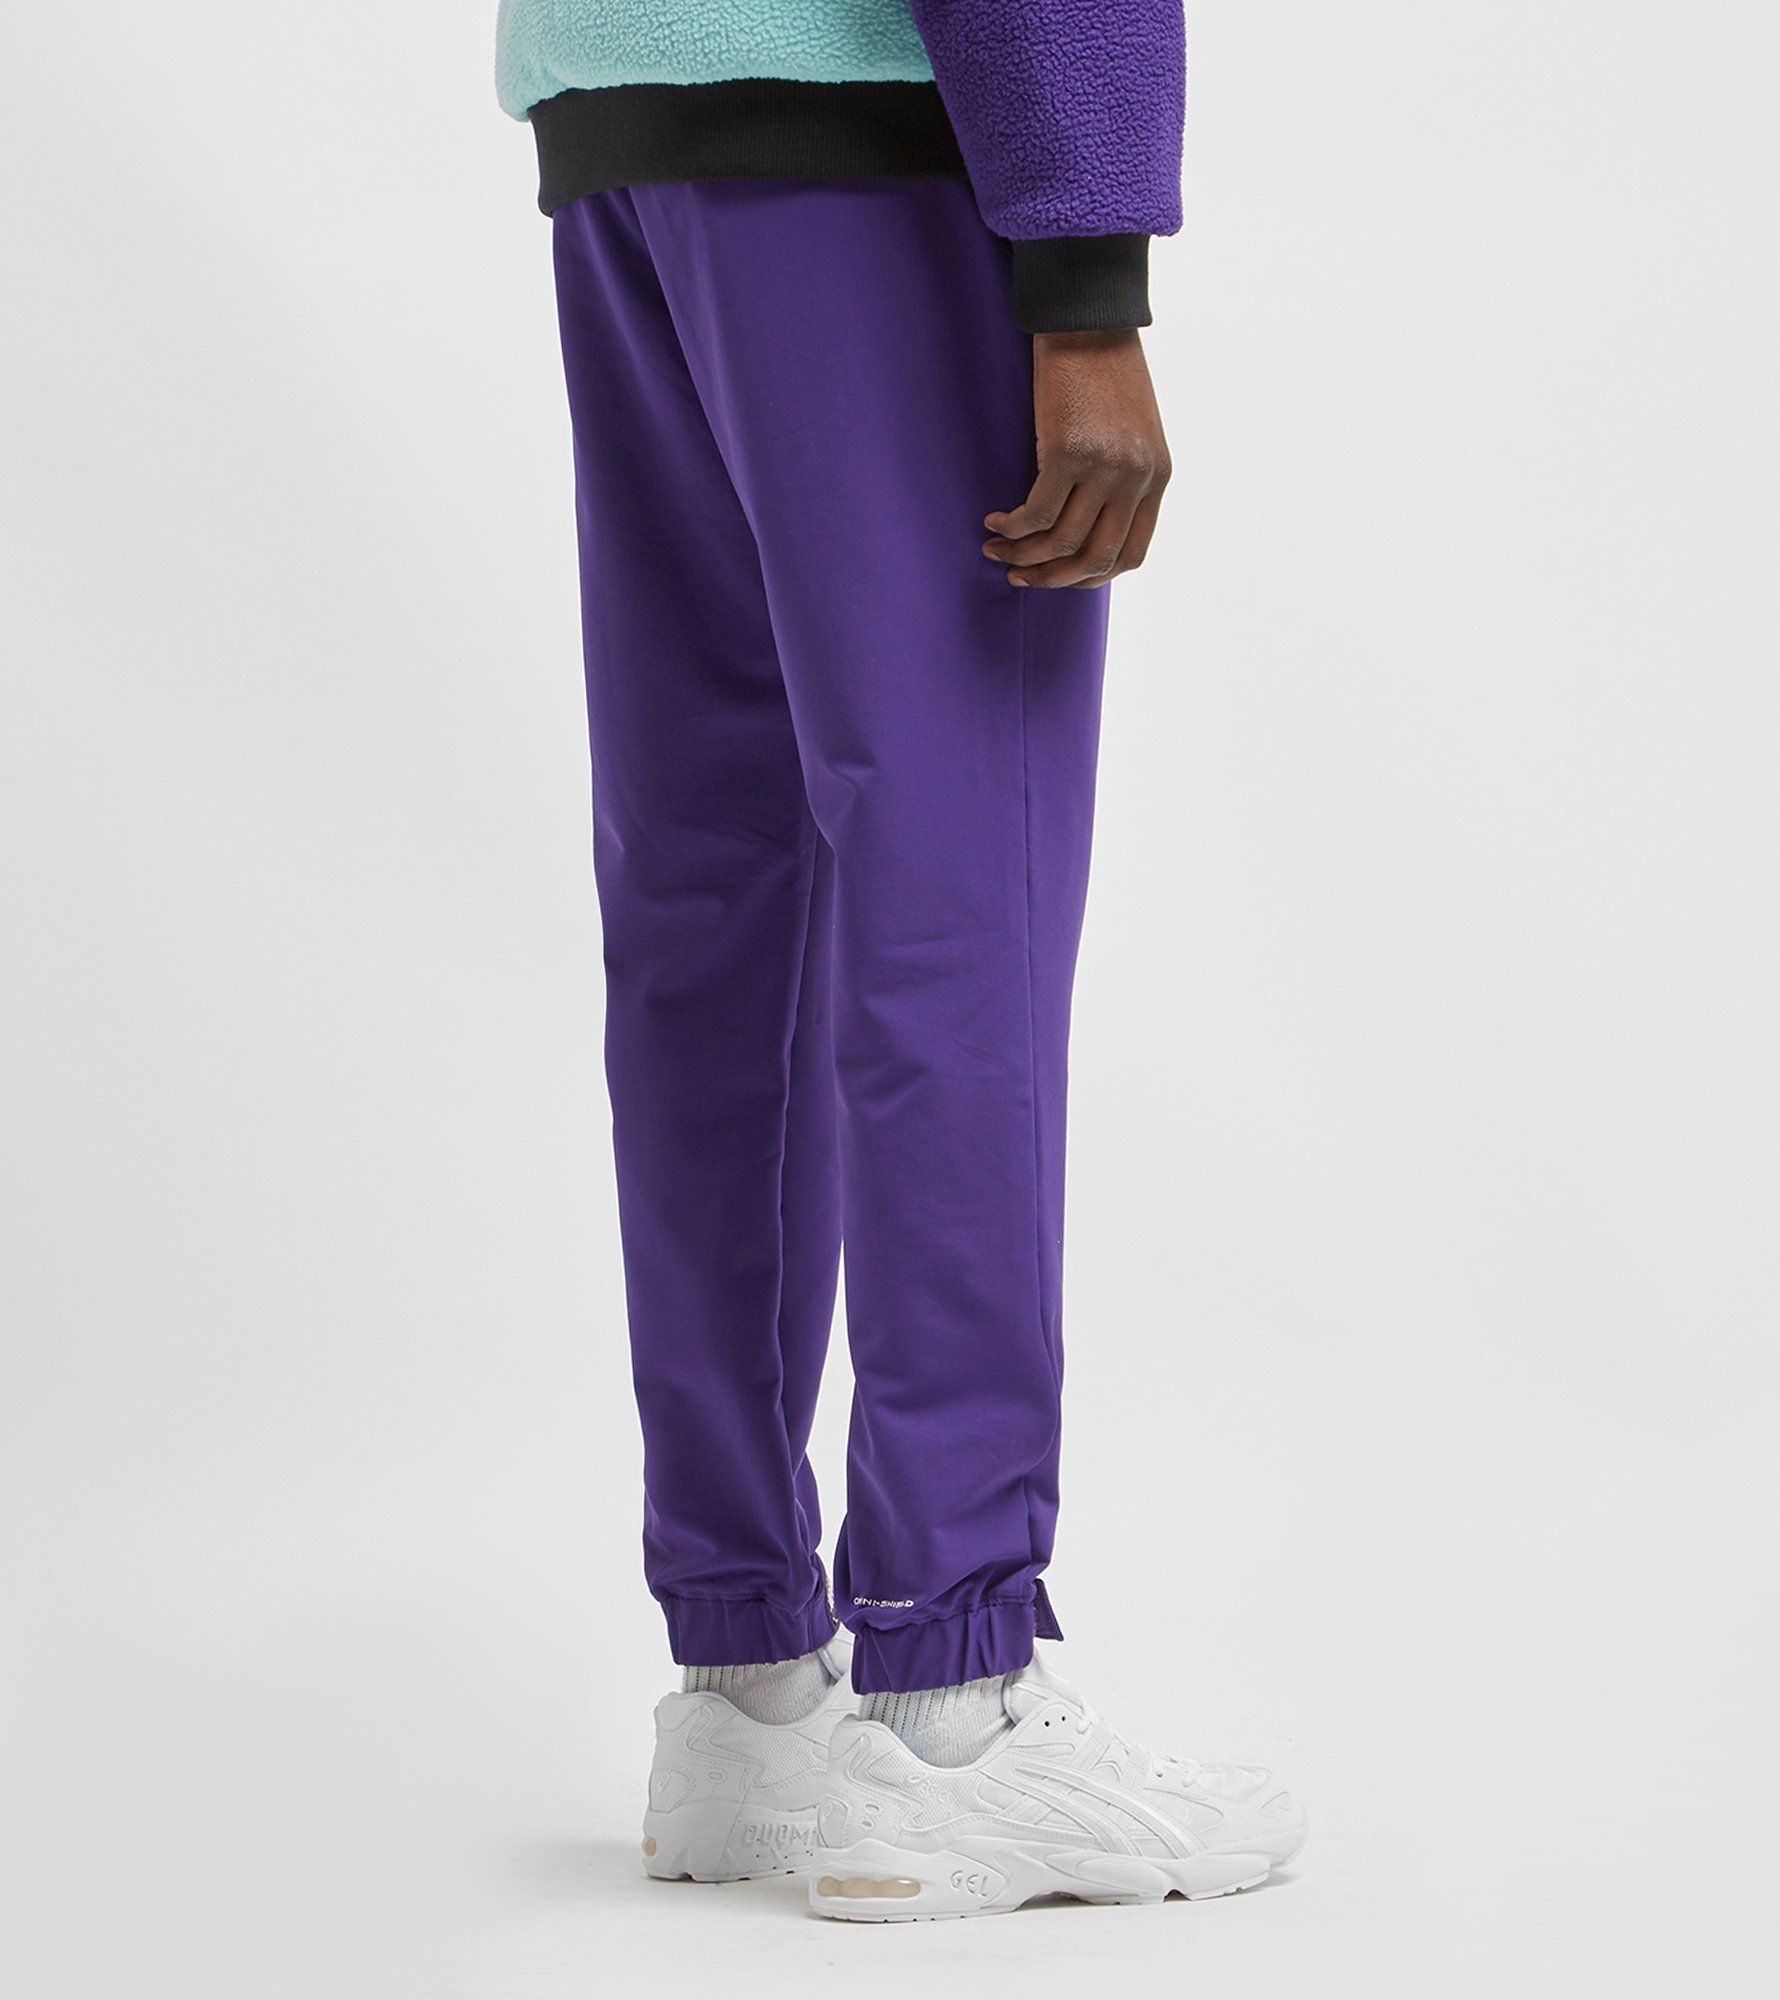 Columbia x Openeing Ceremony Shell Pant